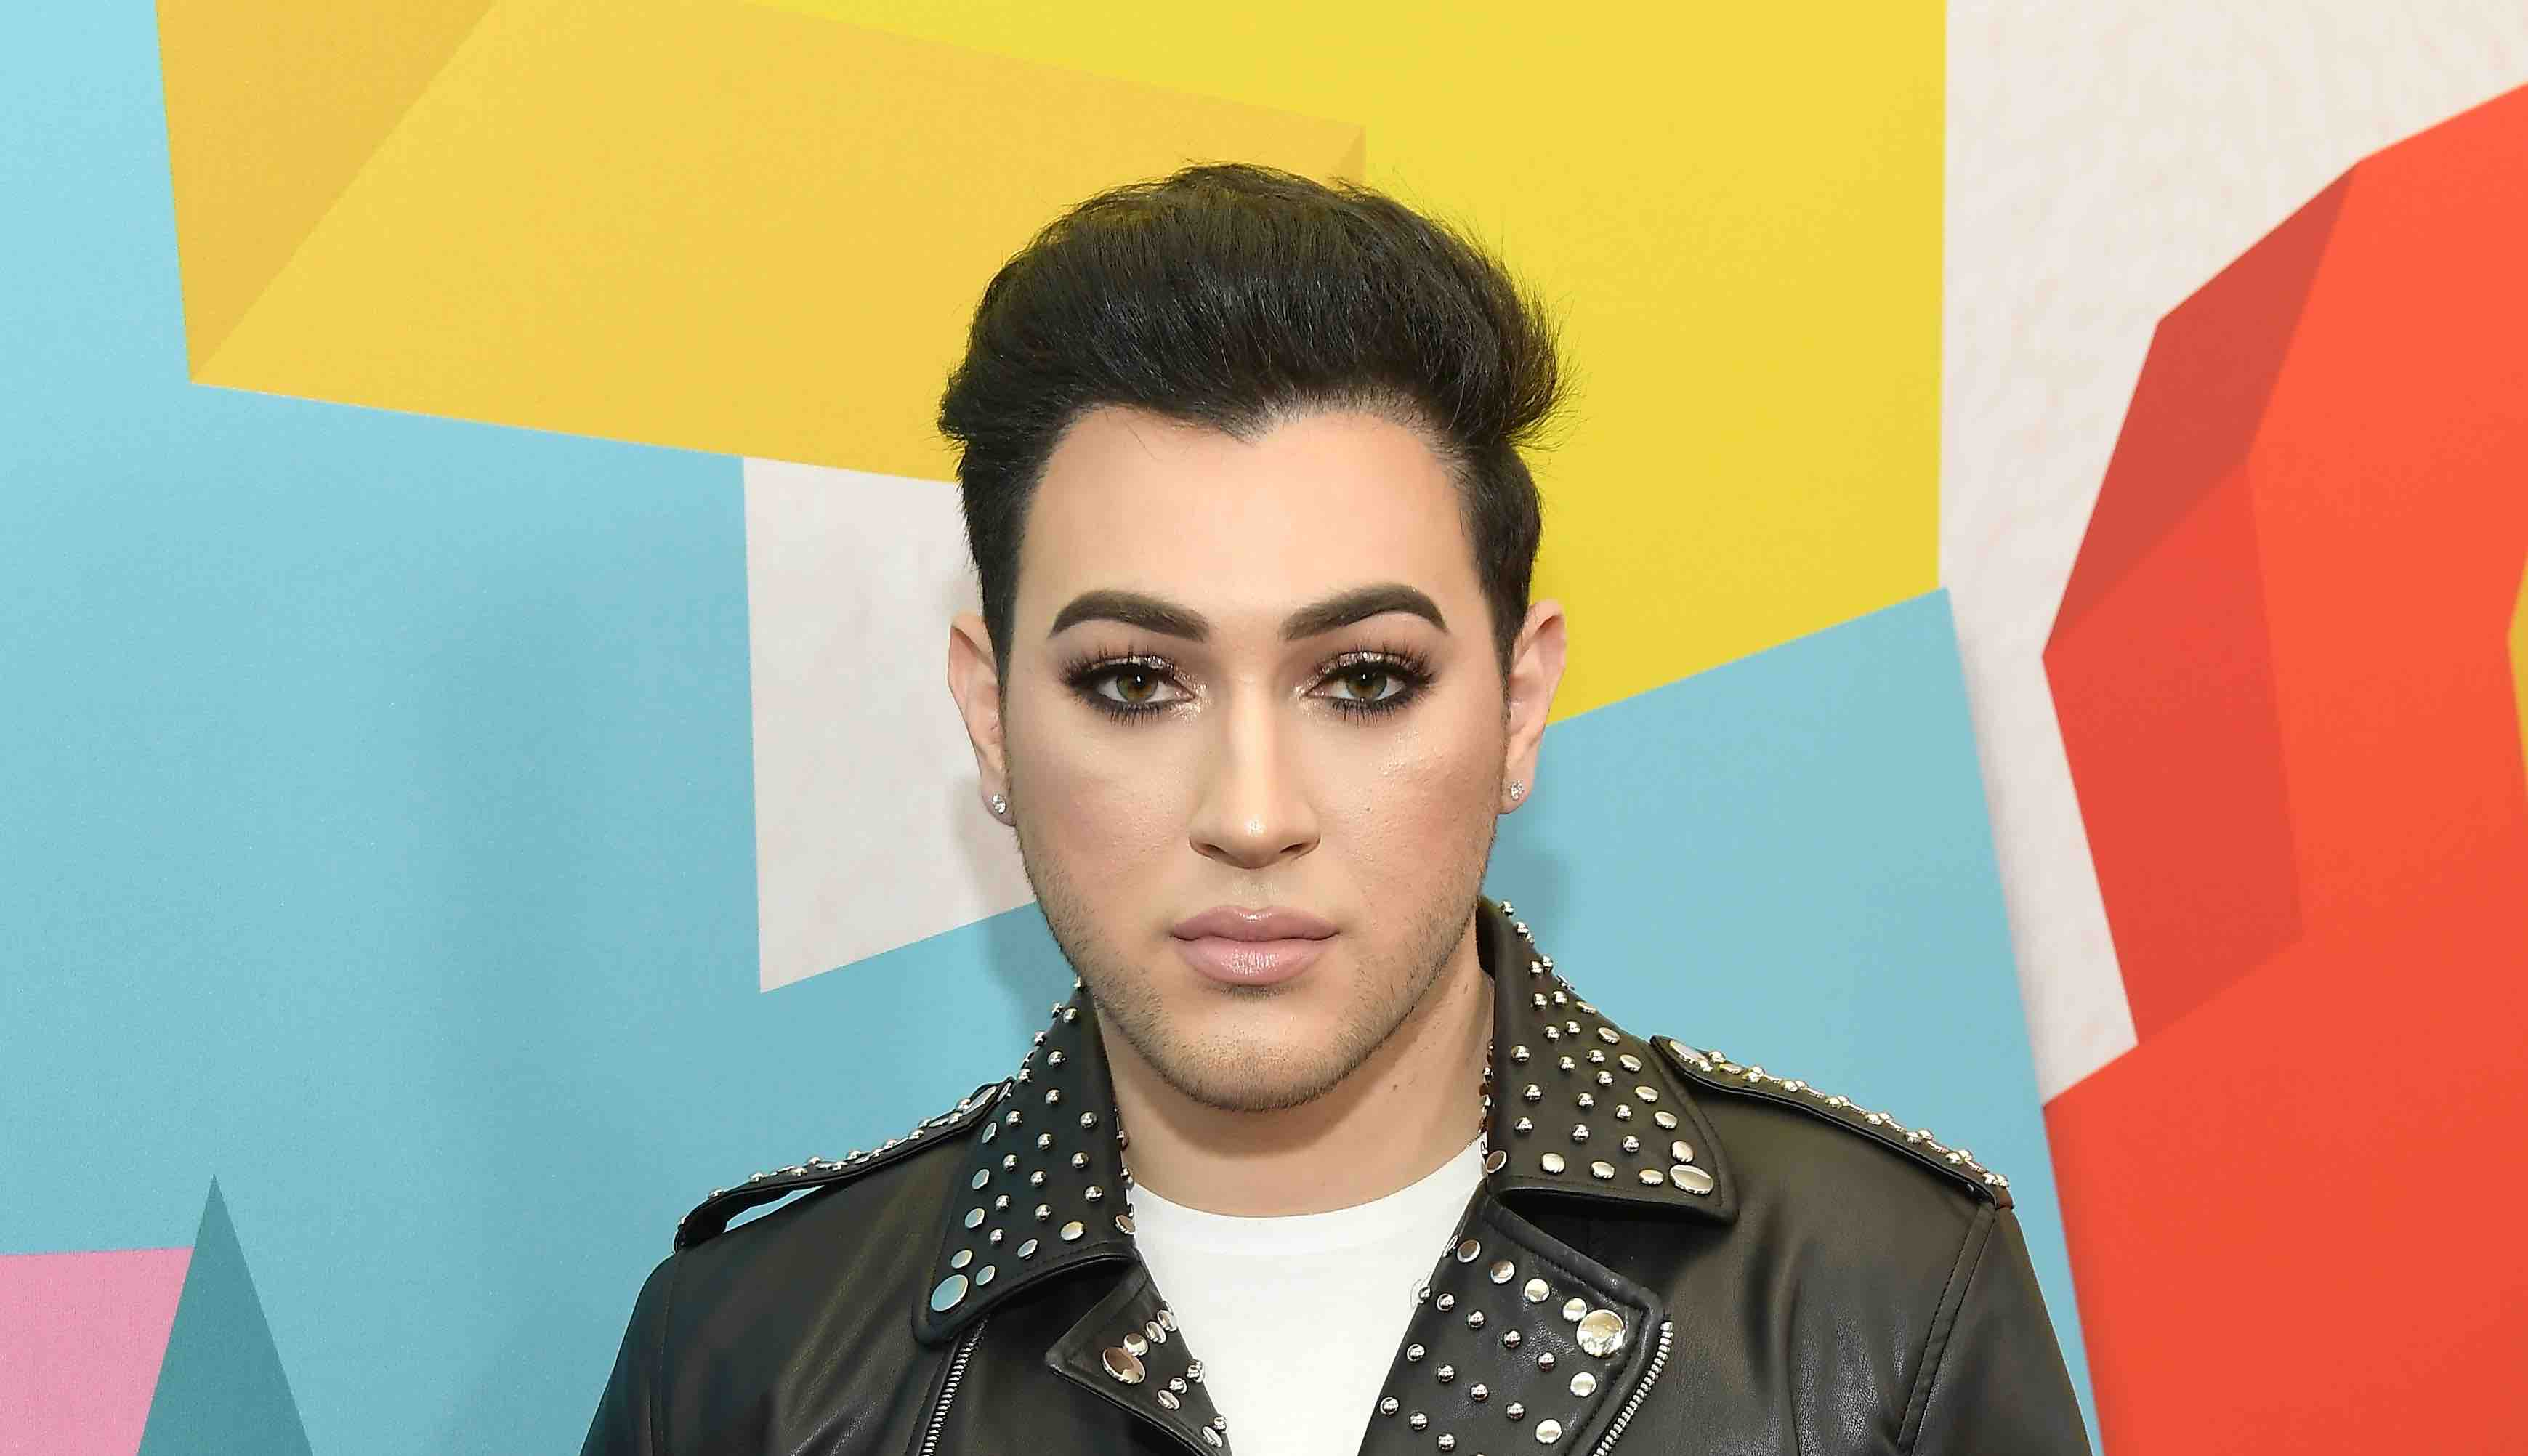 A Breakdown of the Telenovela-Like Drama That Tore Apart Beauty Vloggers Manny MUA & Gabriel Zamora